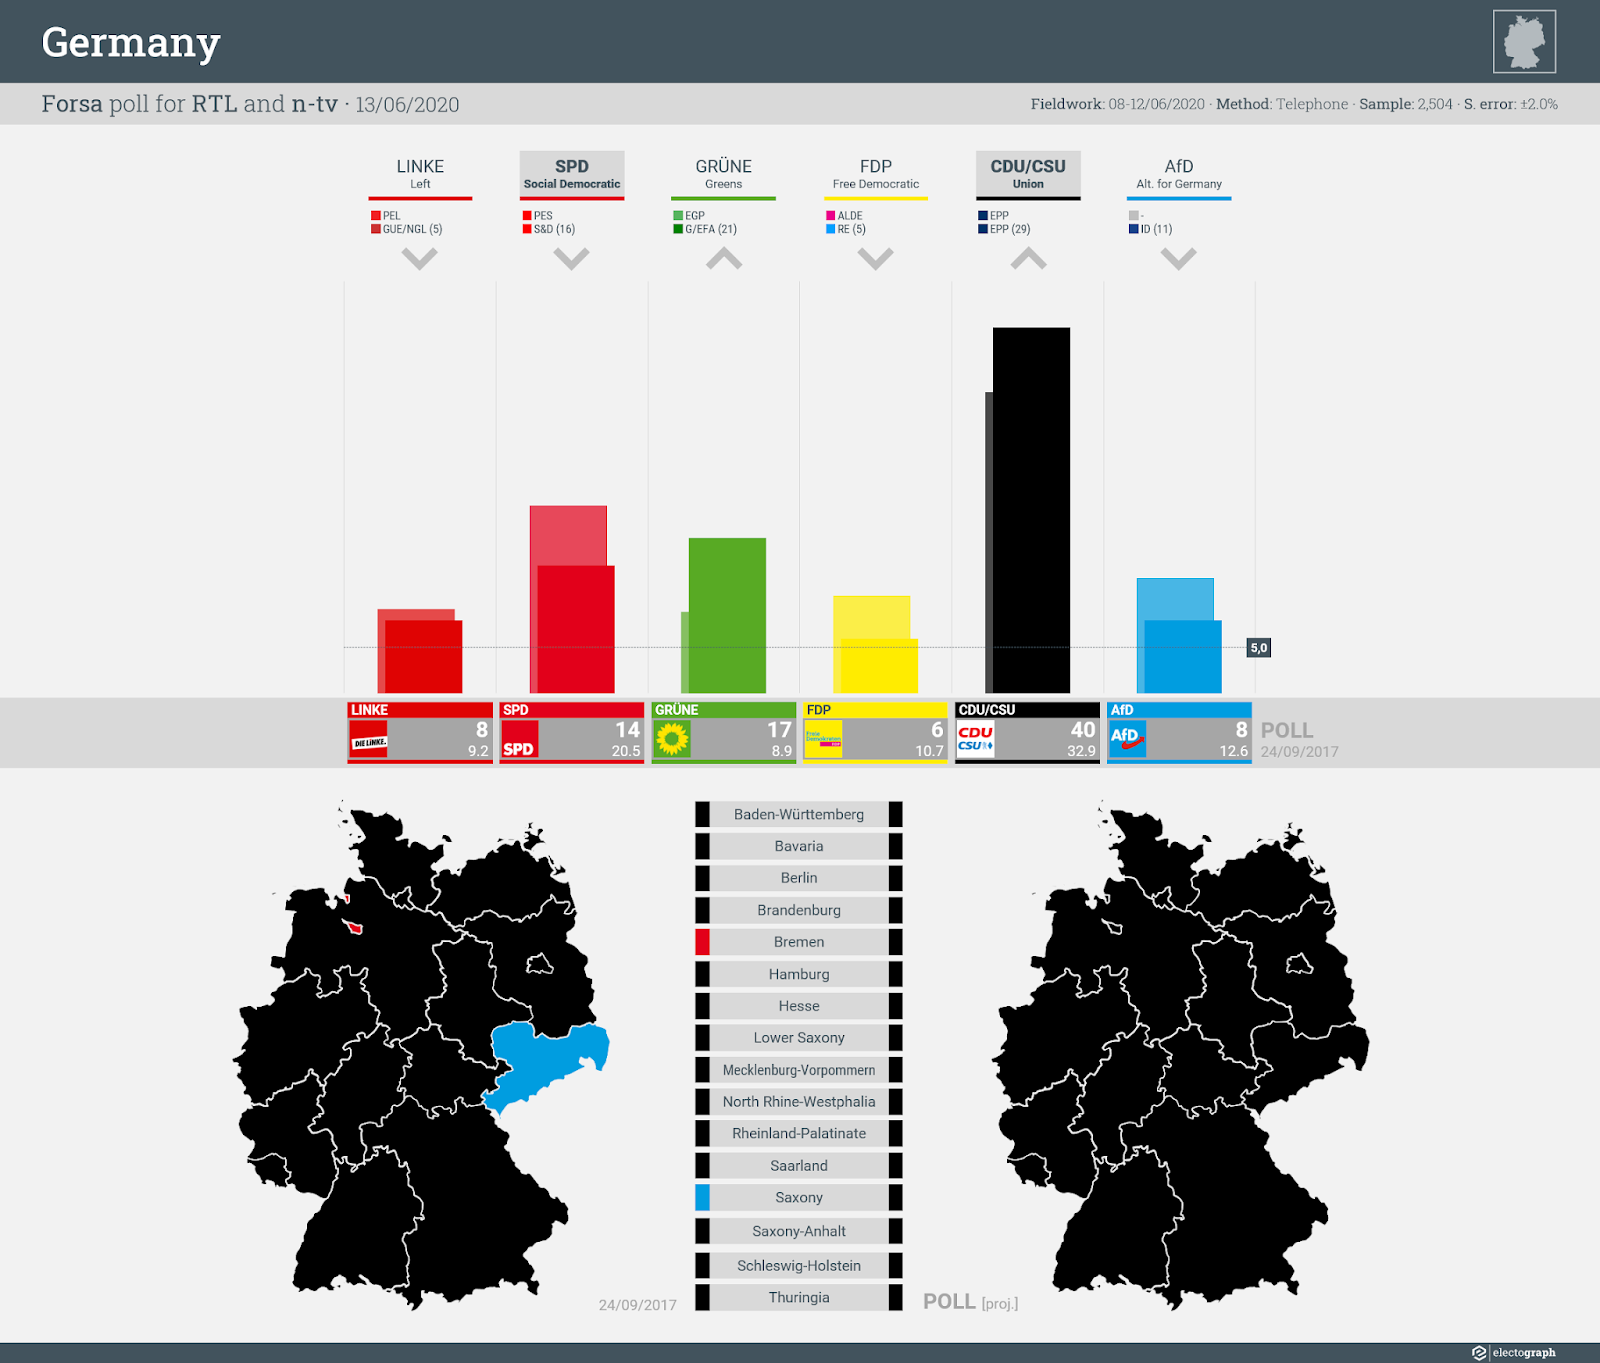 GERMANY: Forsa poll chart for RTL and n-tv, 13 June 2020